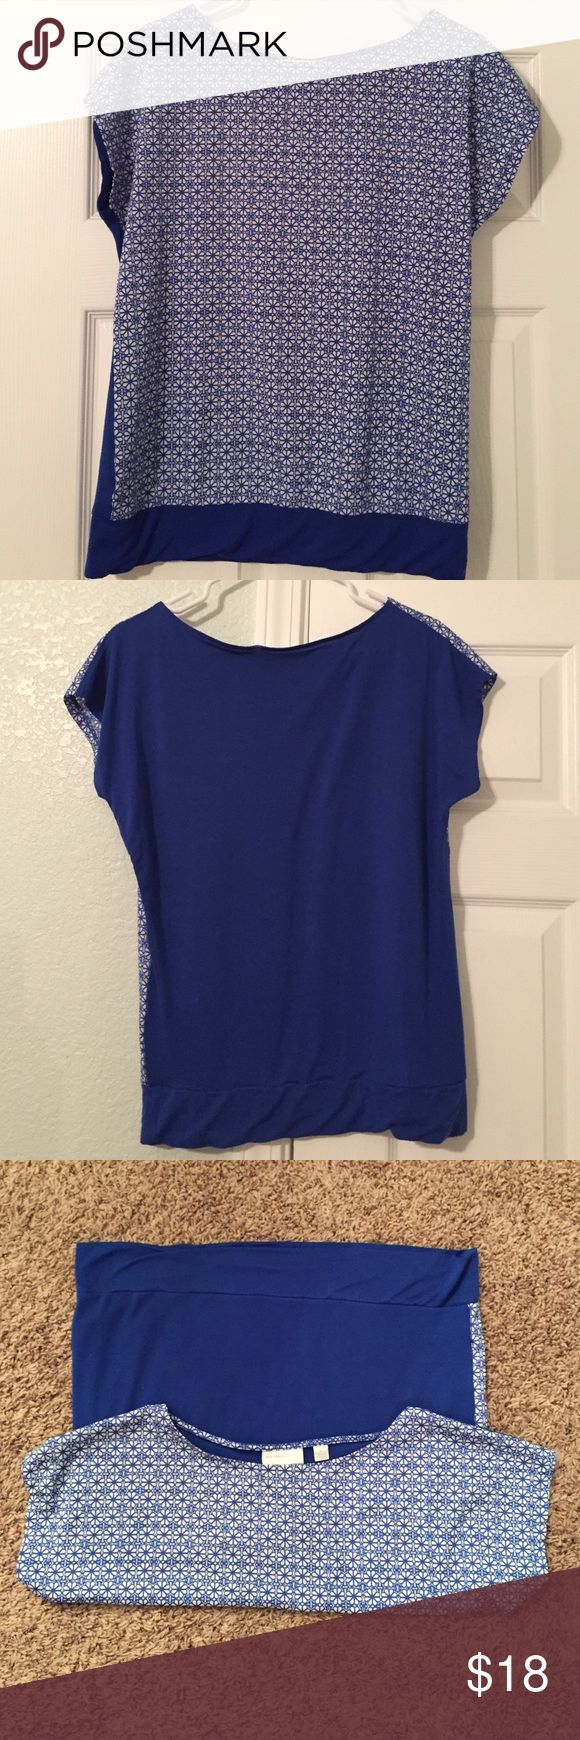 Fun and dressy women's top!! Blue and white women's top that can go with both casual and dressy looks. The front is polyester and has a fun design while the back is a rayon/spandex mix and is a solid blue. The color is beautiful! Great condition!! New York & Company Tops Blouses